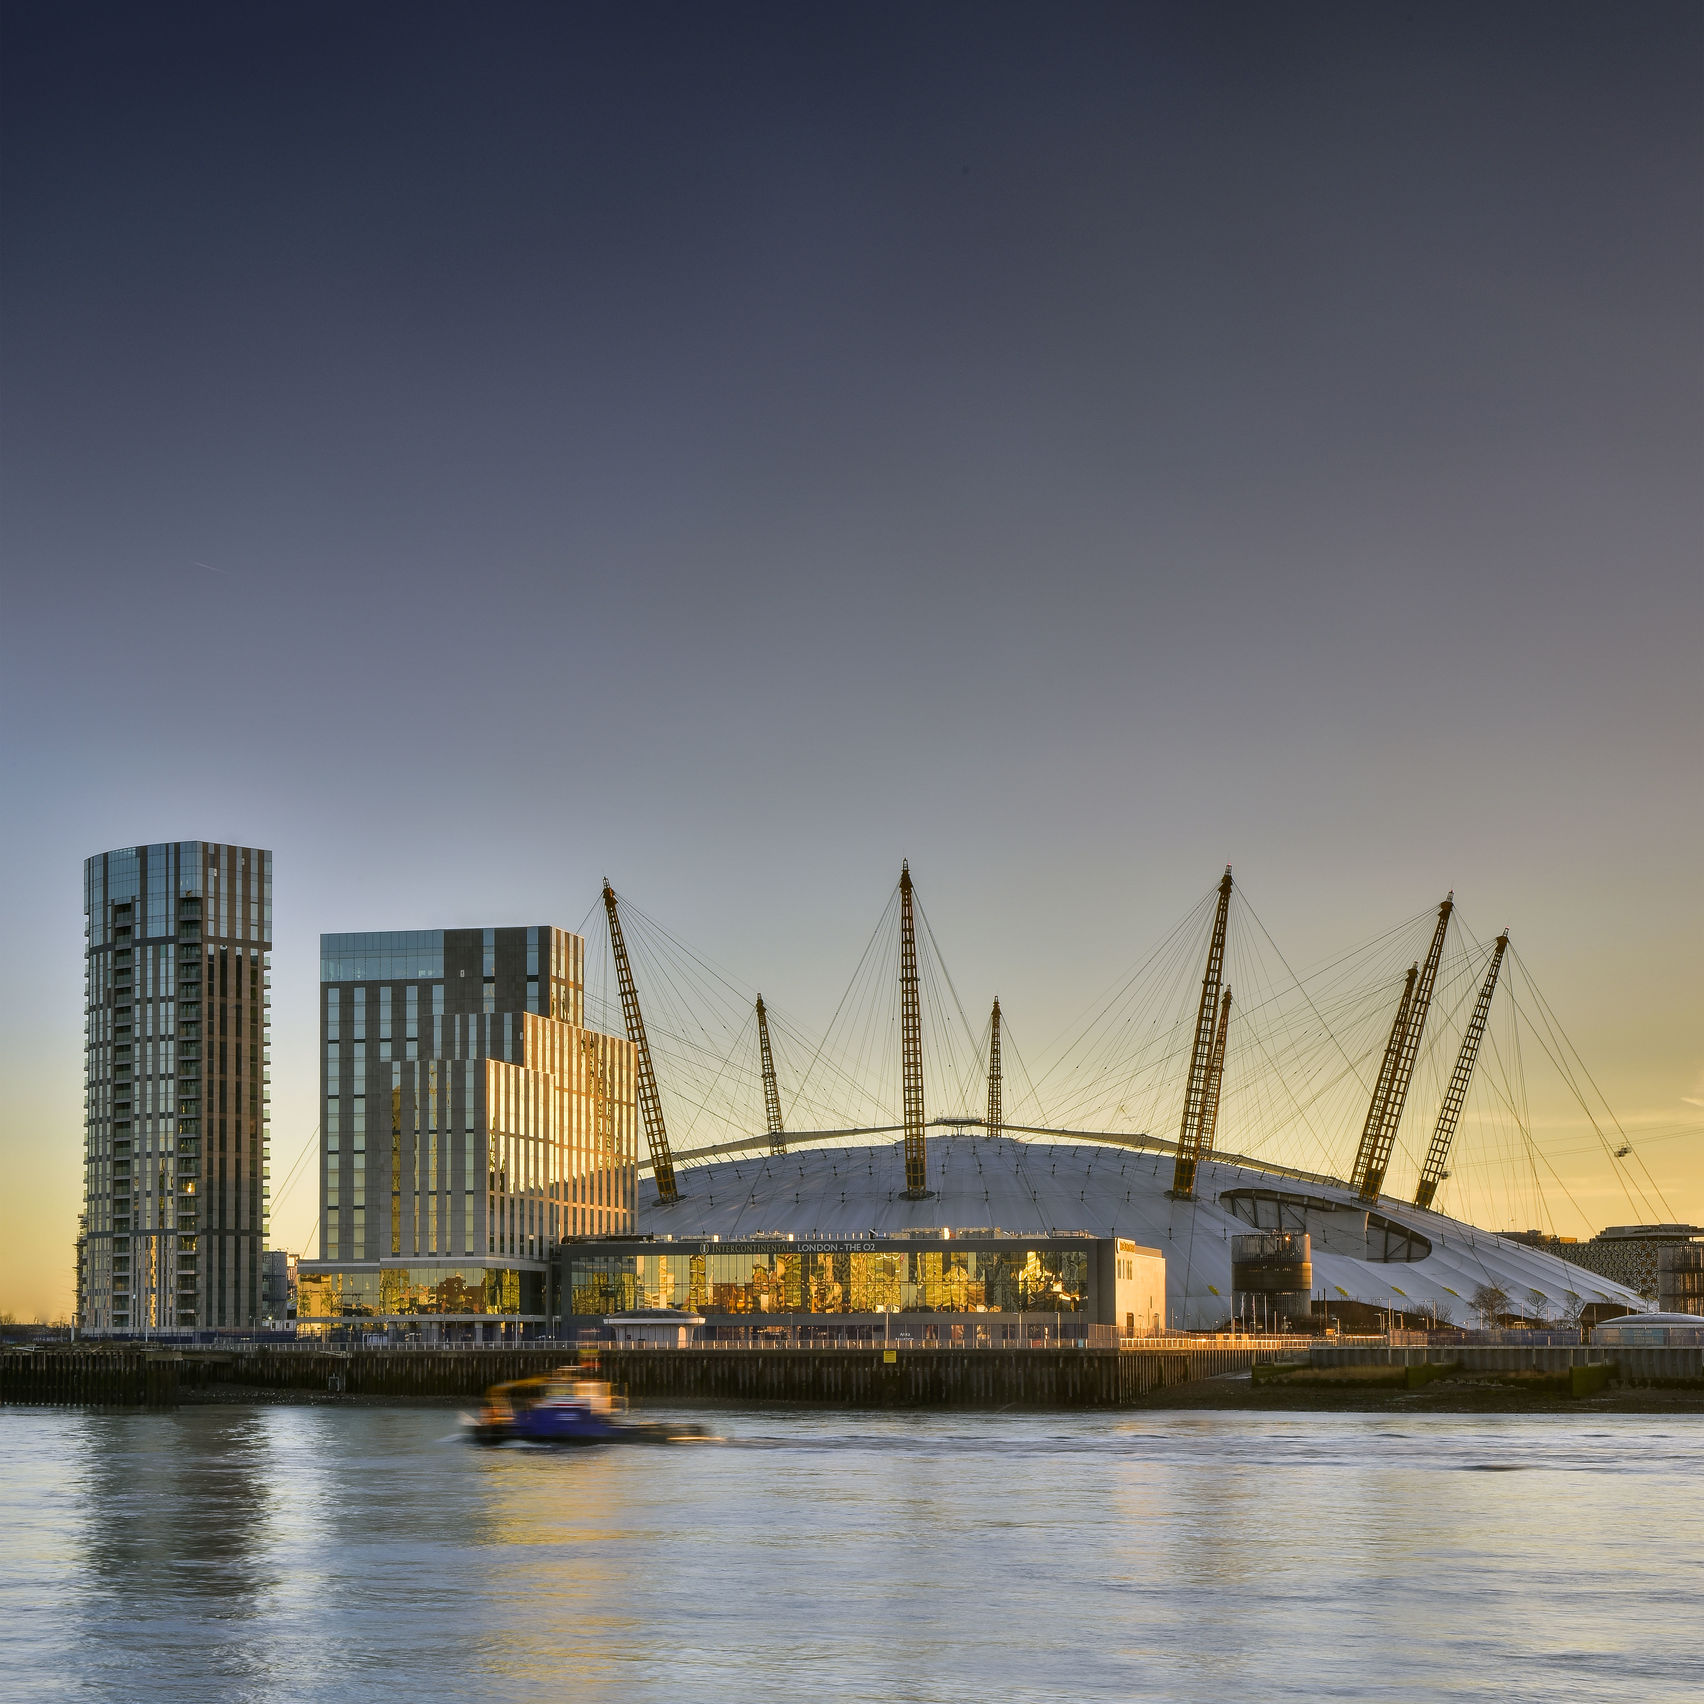 TIMELESS LUXURY HOTEL AND CONFERENCE CENTRE , InterContinental London - The O2